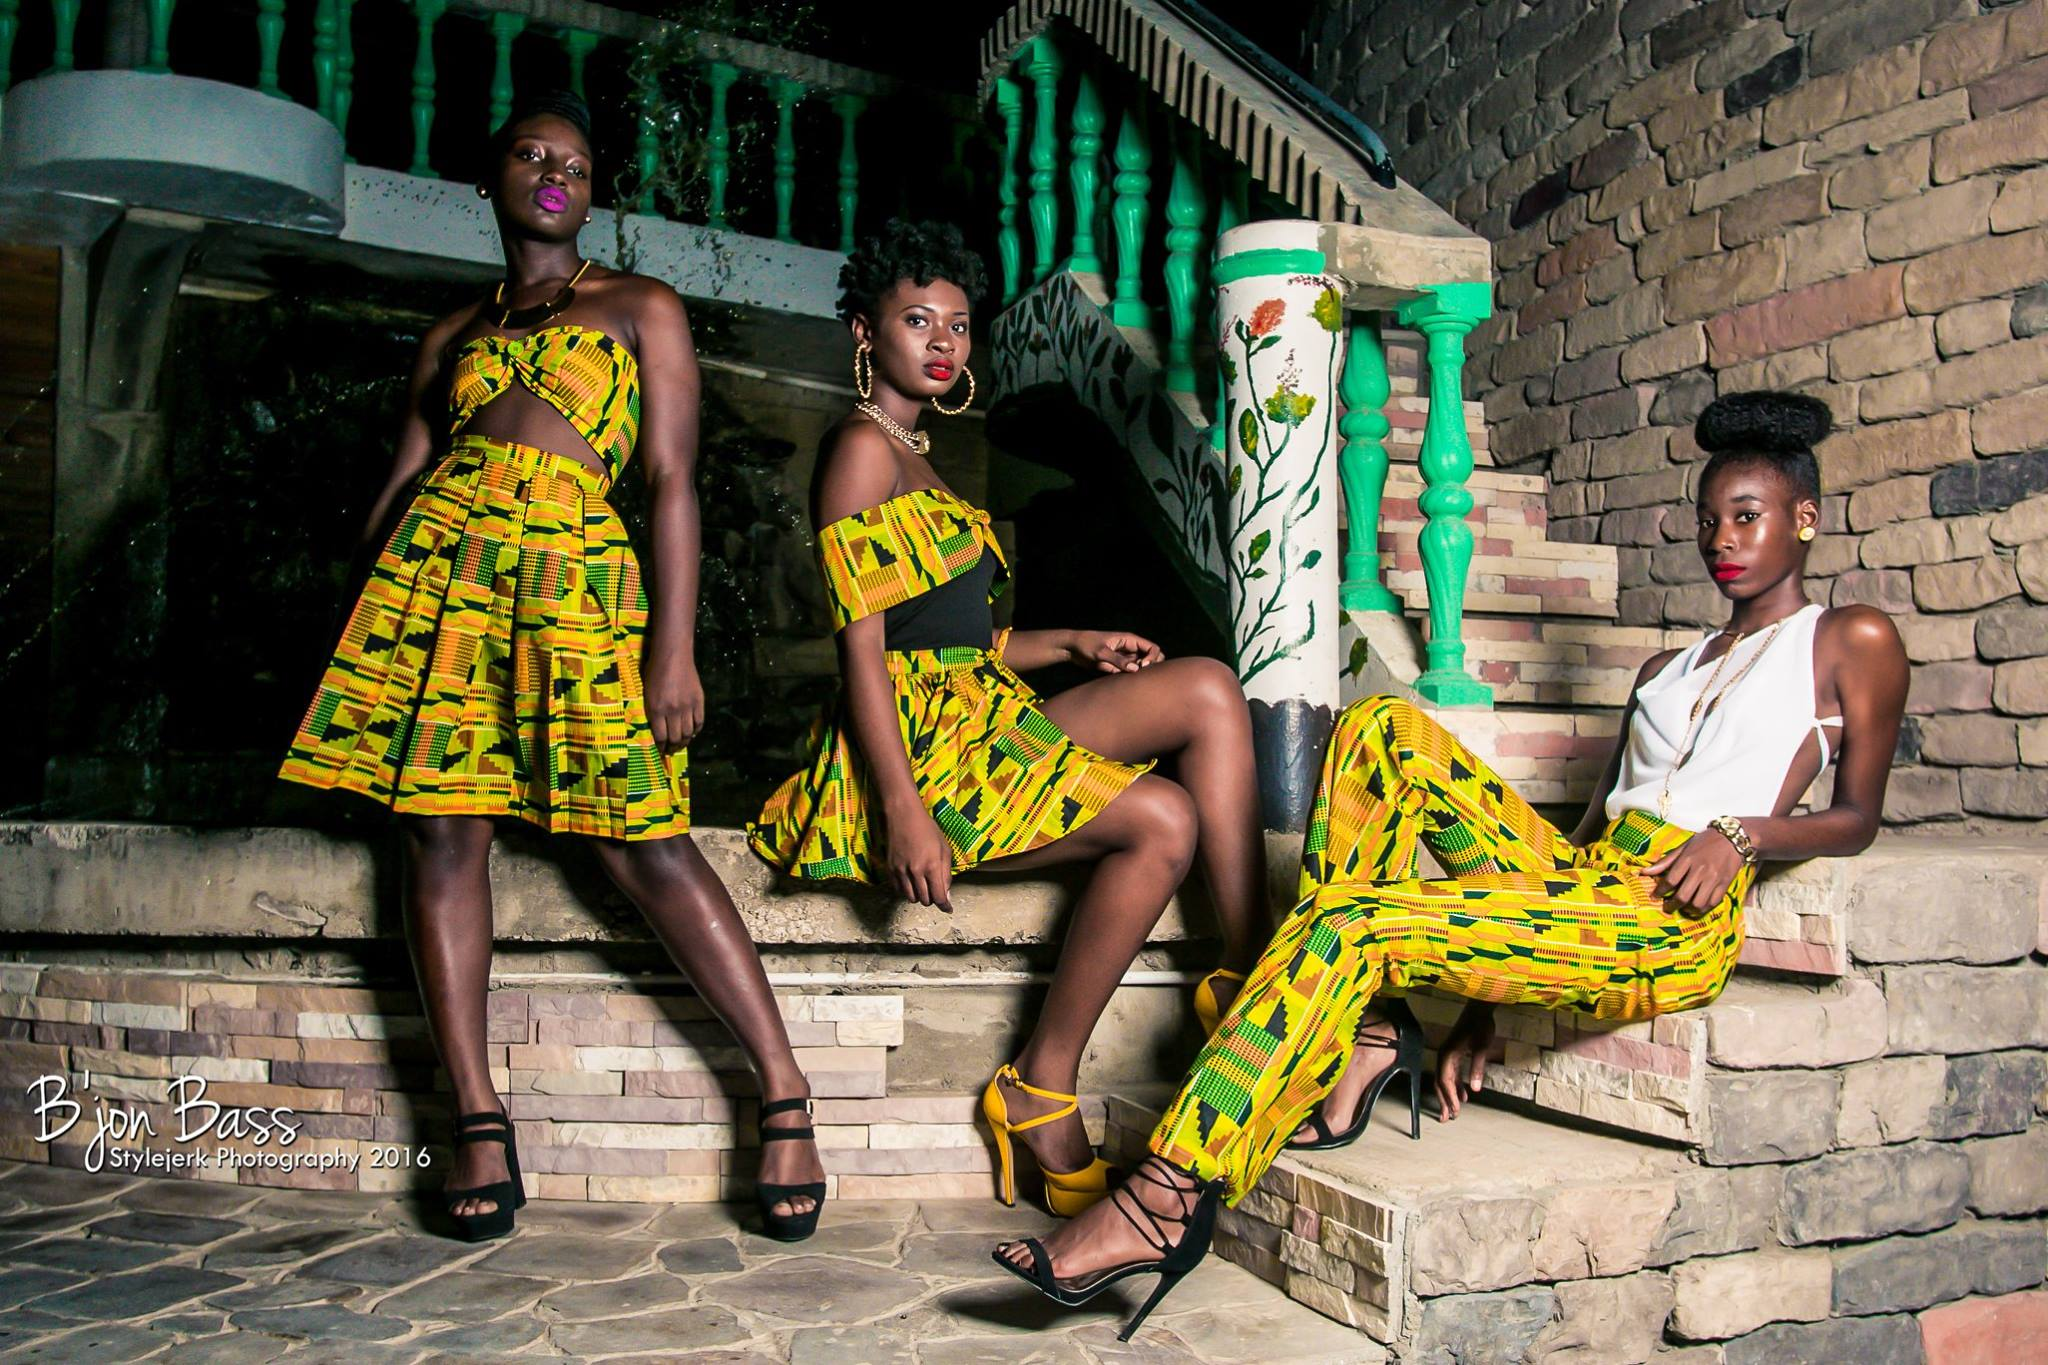 Models pose in designs from Iridescent Fashion's Nubian Goddess collection. (Courtesy of Shavaniece Lake and Keanna Ible)